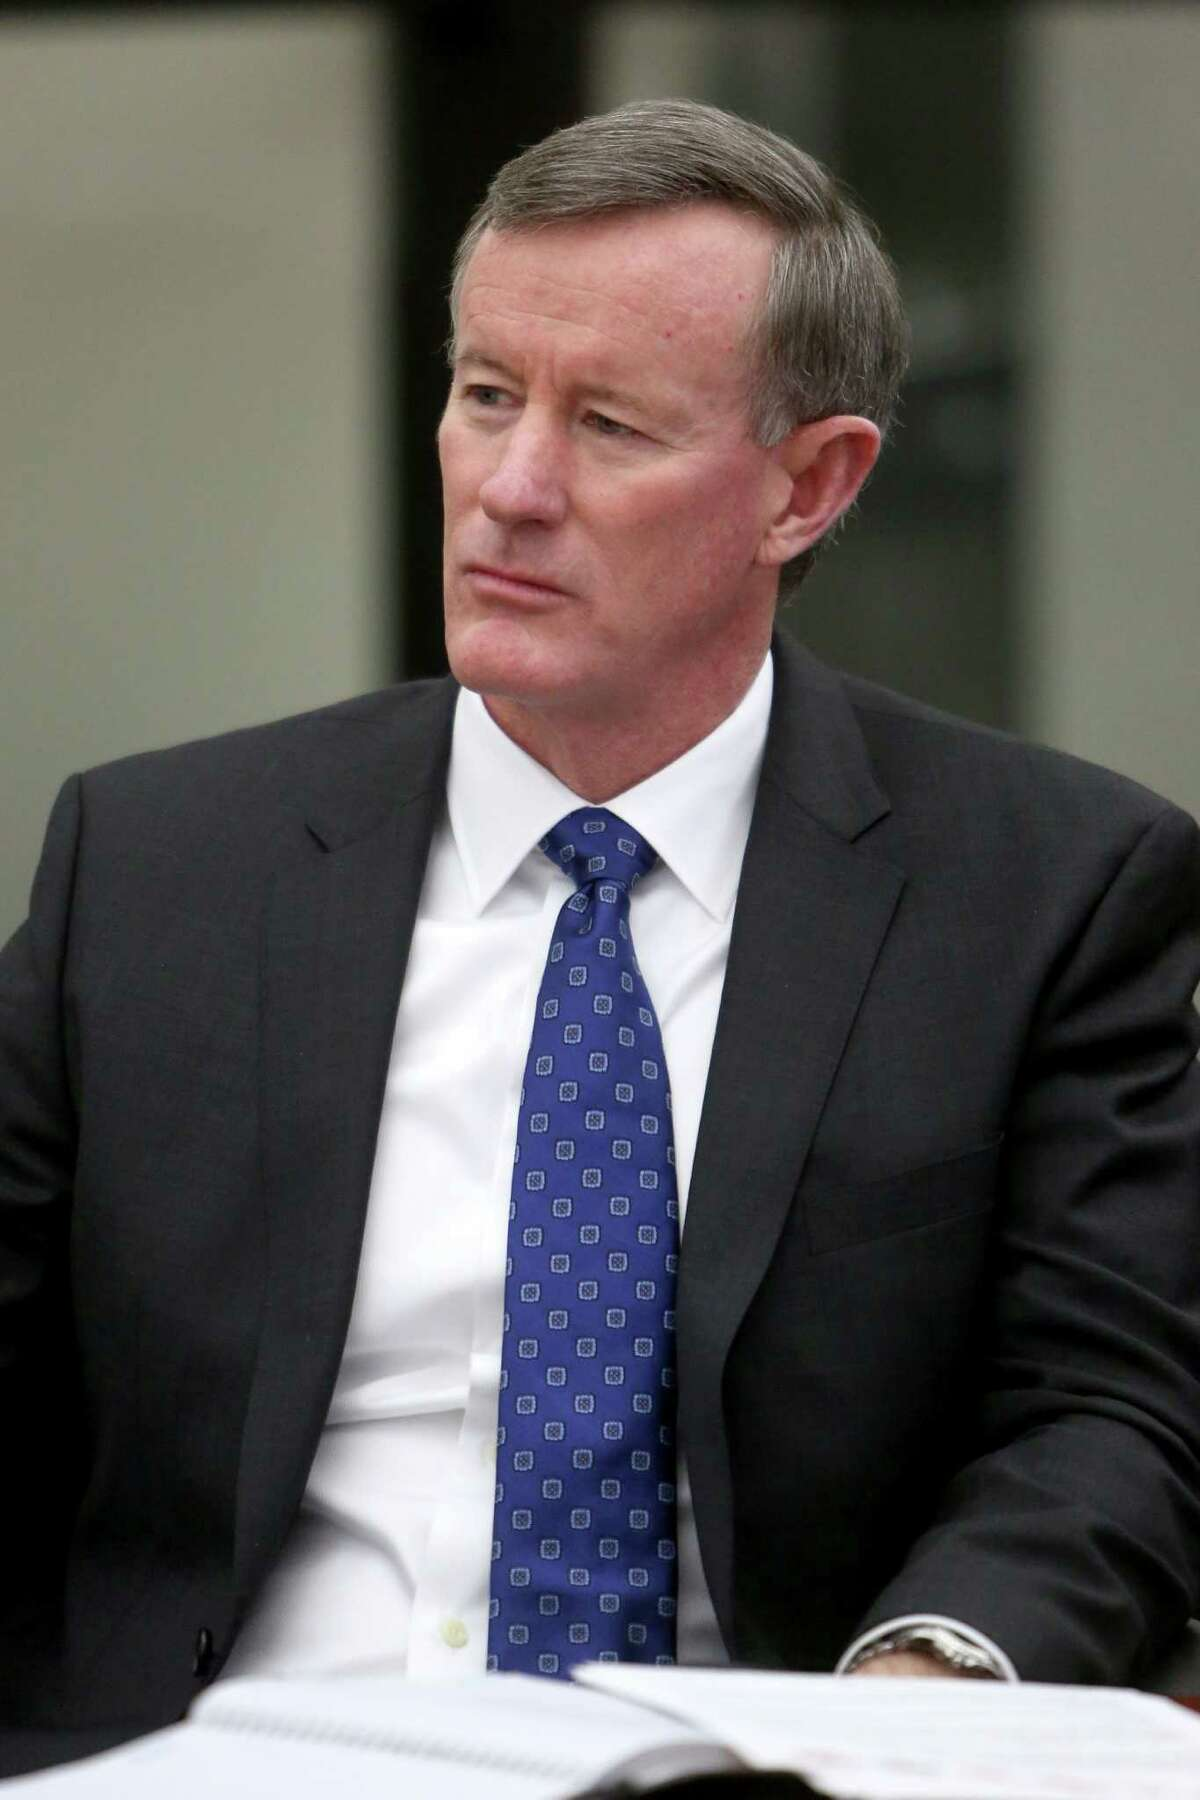 William McRaven, University of Texas, a chancellor of Texas' public university systems meets with the Chronicle's editorial board at the Houston Chronicle Monday, Jan. 12, 2015, in Houston, Texas. ( Gary Coronado / Houston Chronicle )